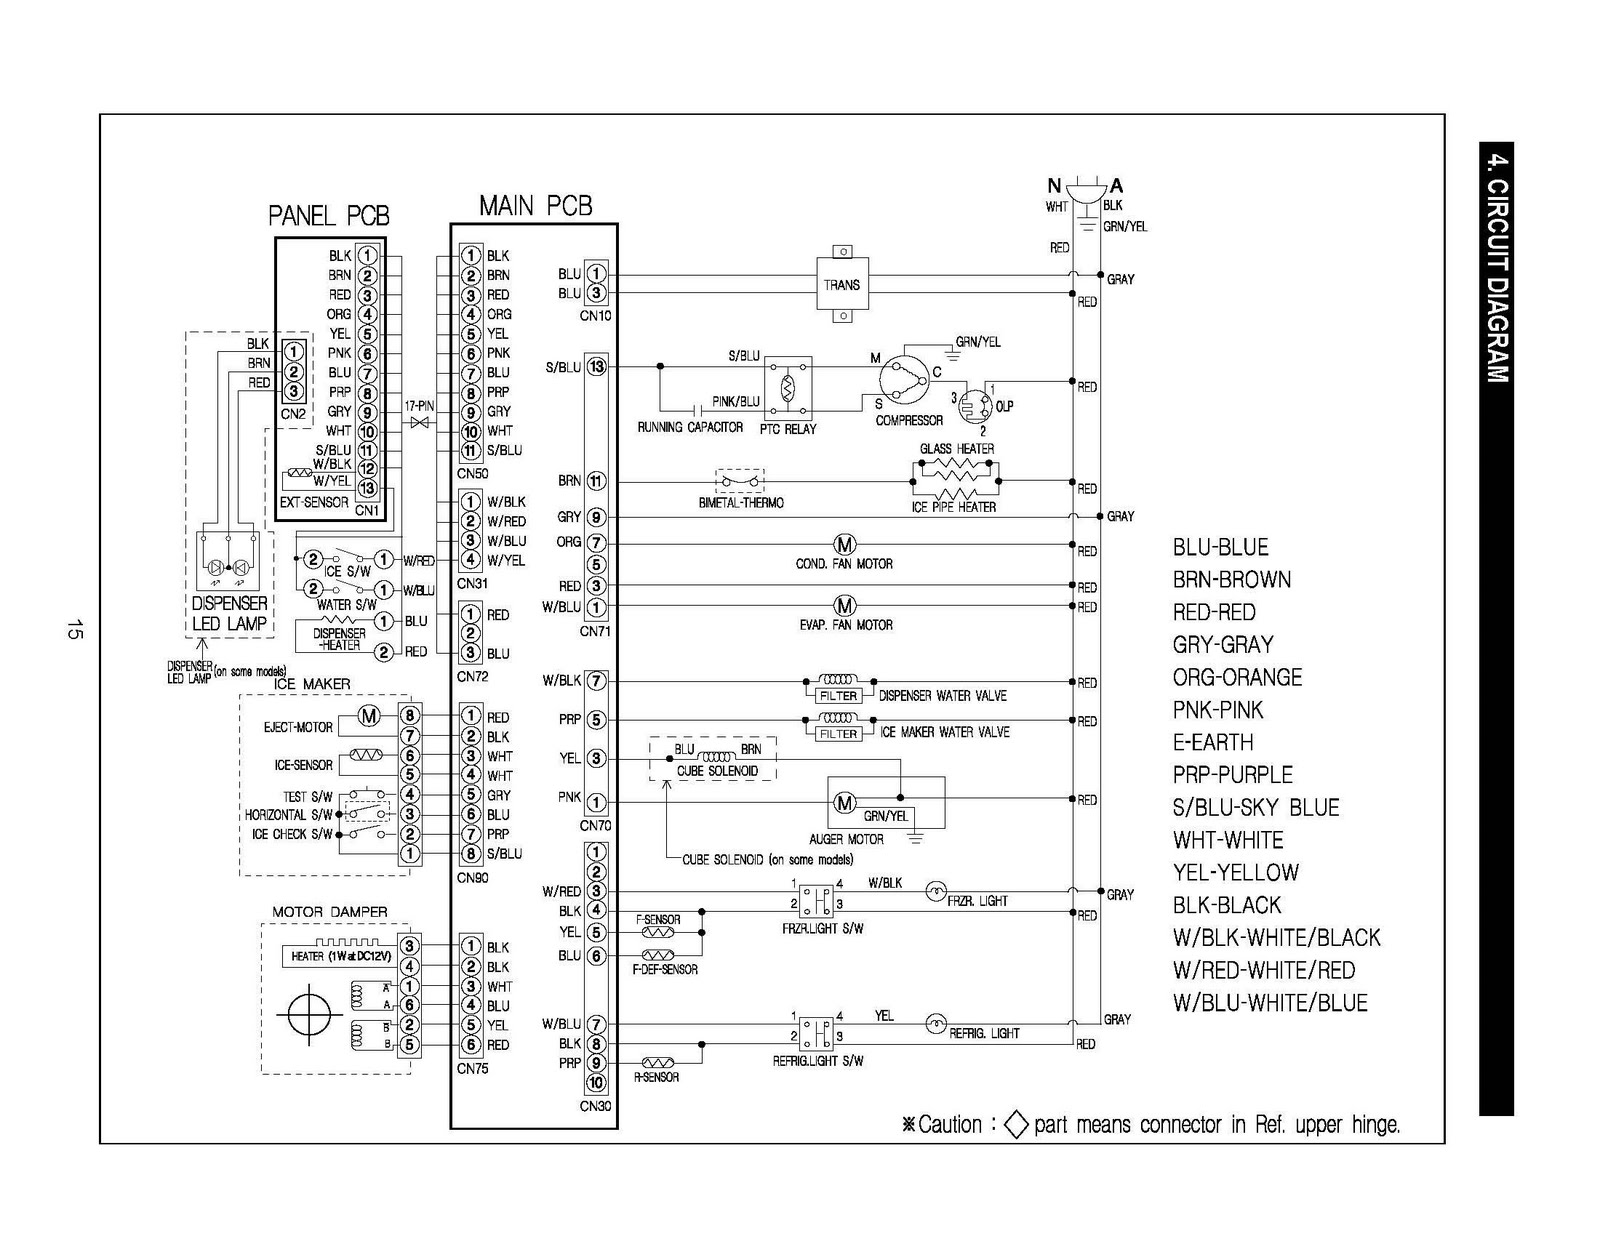 samsung washing machine wiring diagram pdf samsung wiring diagram ge refrigerator the wiring diagram on samsung washing machine wiring diagram pdf